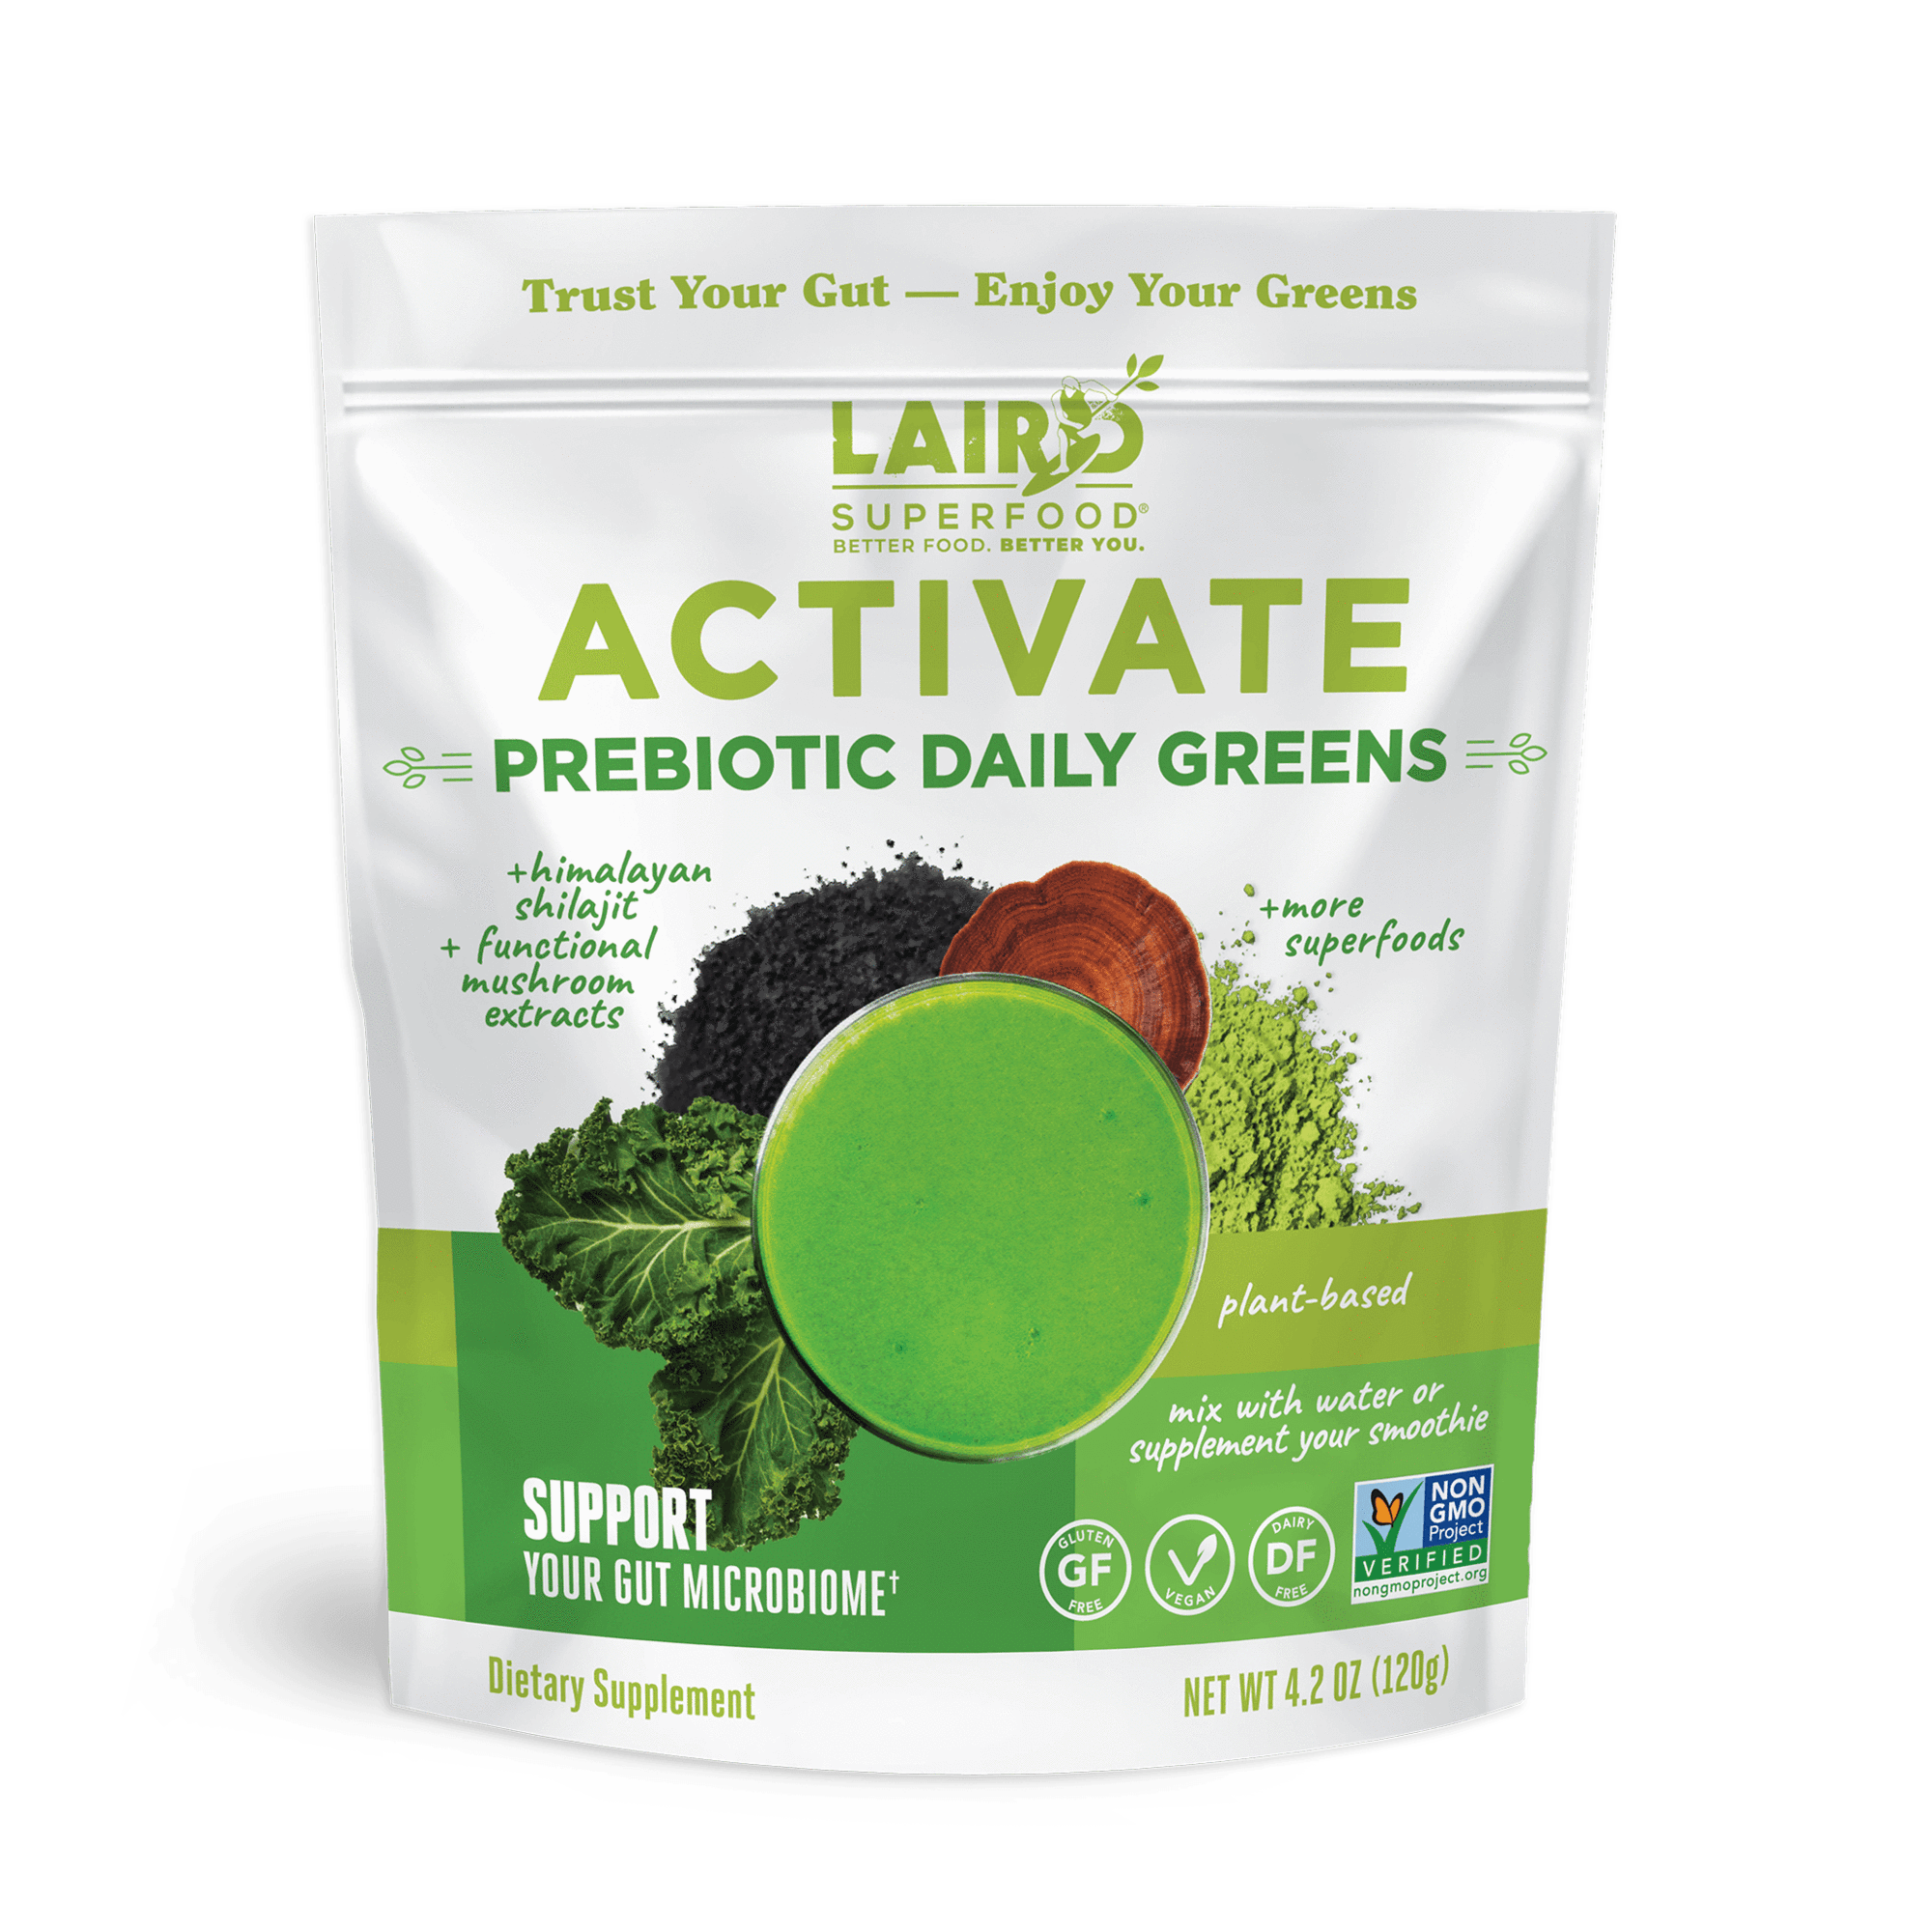 Laird Superfood 4 oz Activate Prebiotic Greens (Club Add-On!)